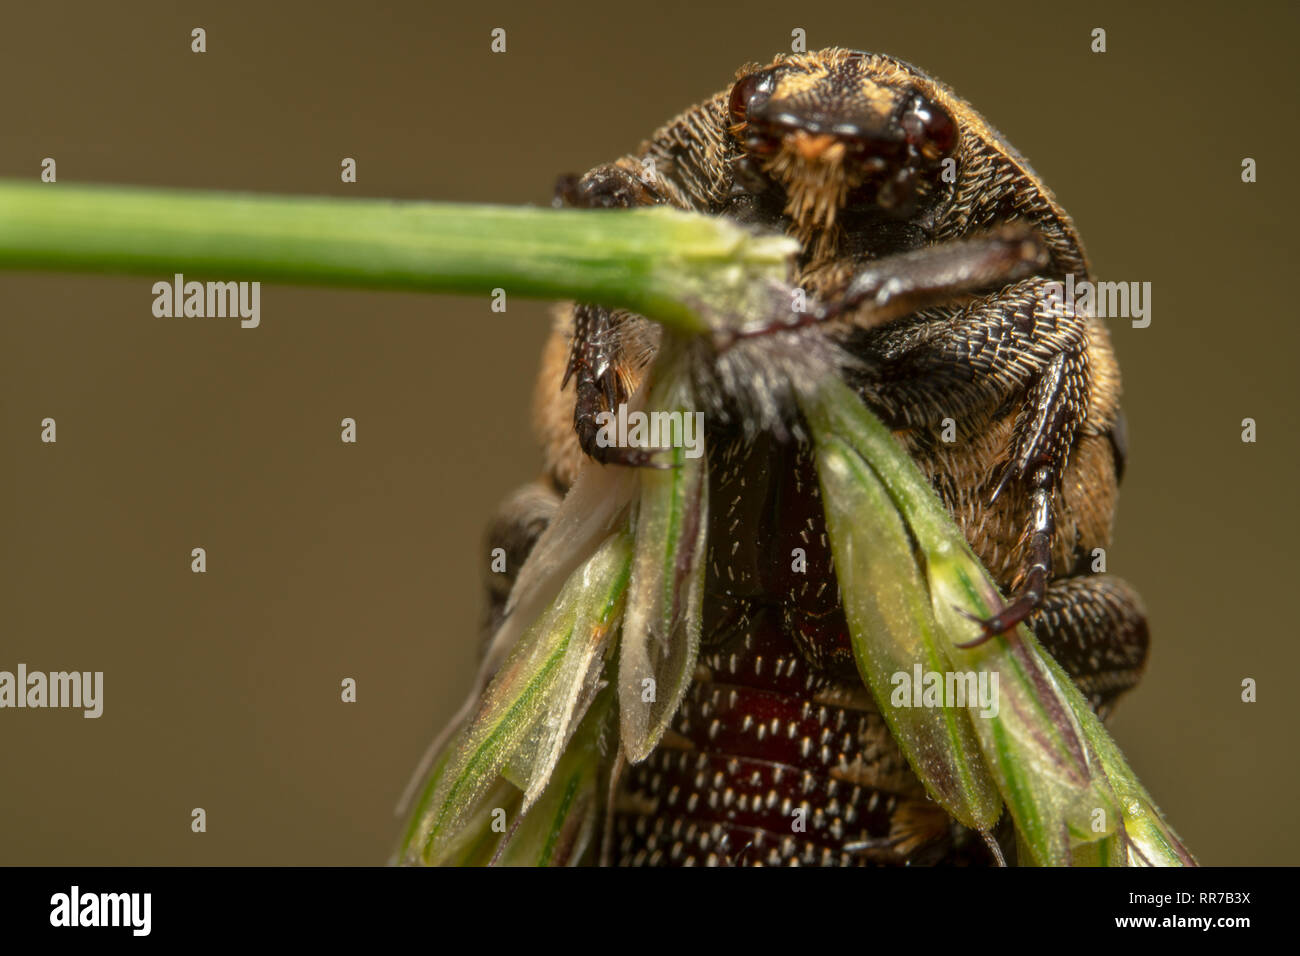 Portrait close up shot of a Light colour Varied carpet beetle Anthrenus verbasci on the right side holding onto a green plant Stock Photo